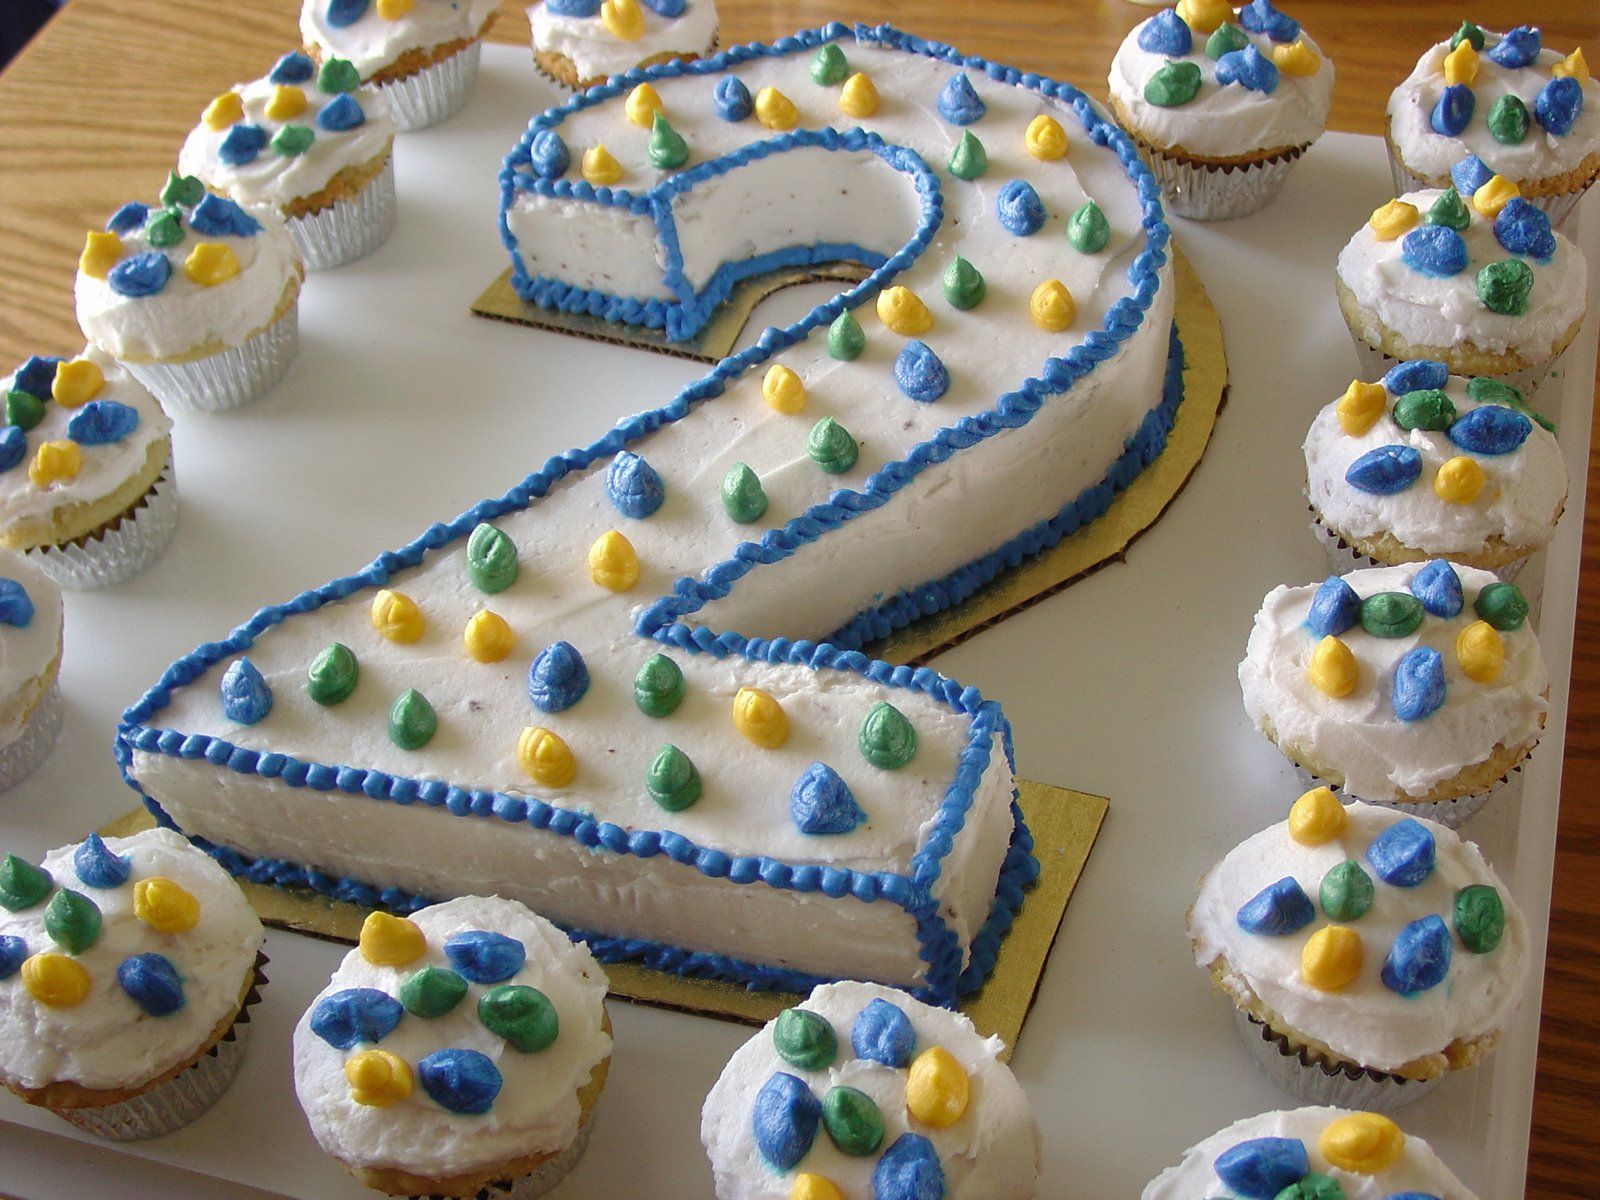 Cake Ideas For 5 Year Old Boy Birthday : birthday cake for boys BIRTHDAY CAKE 2 year old ...